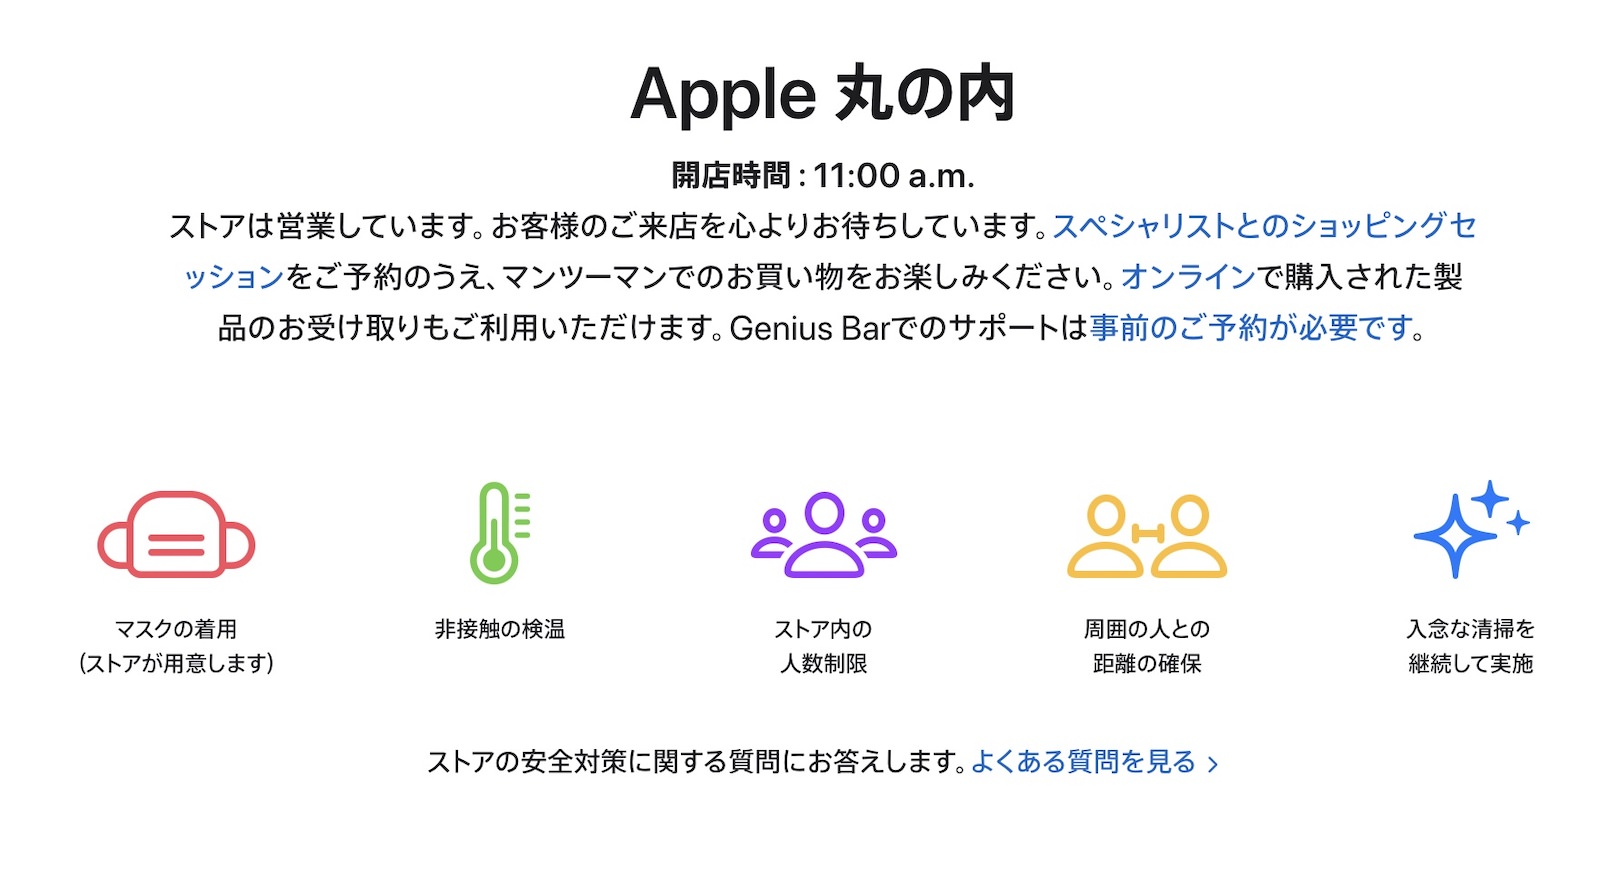 Apple store restrictions